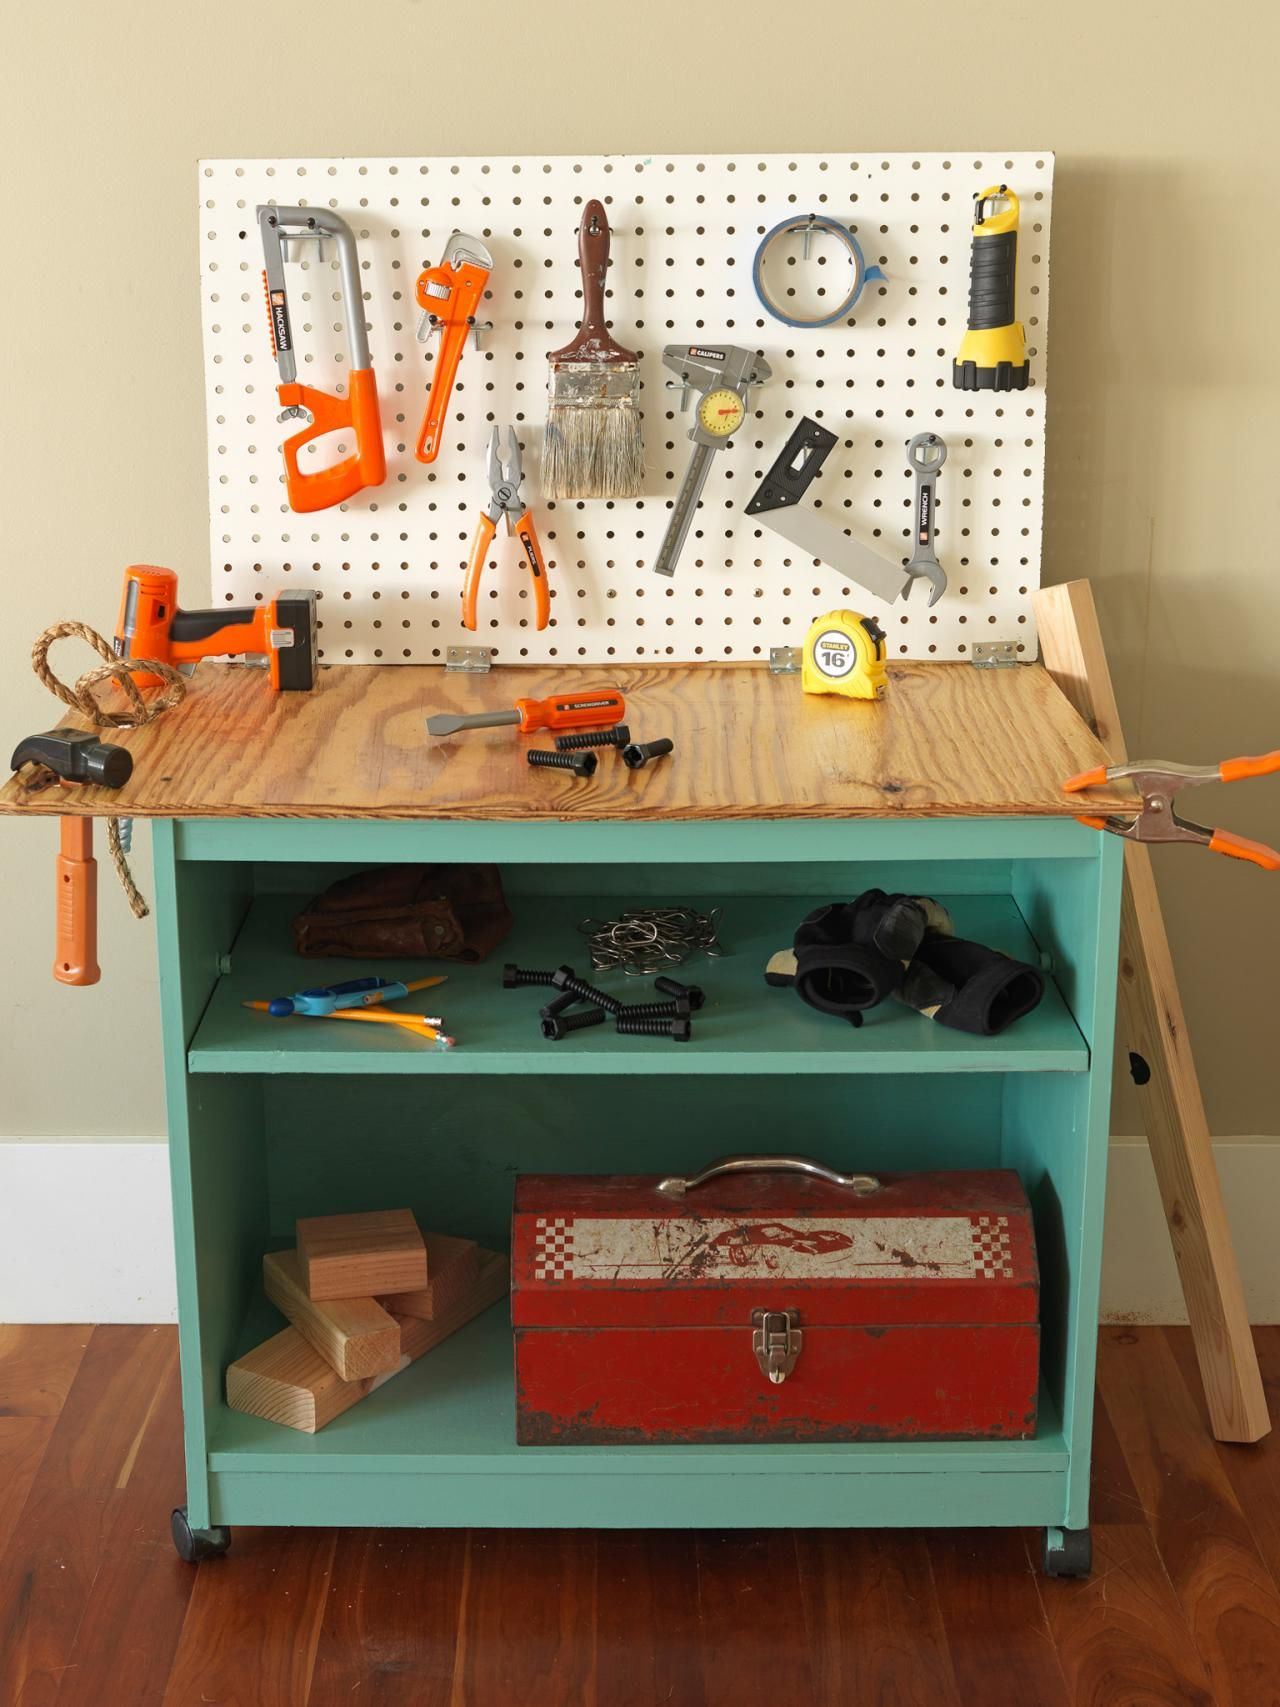 How To Turn Old Furniture Into A Kids Toy Workbench Diy Kids